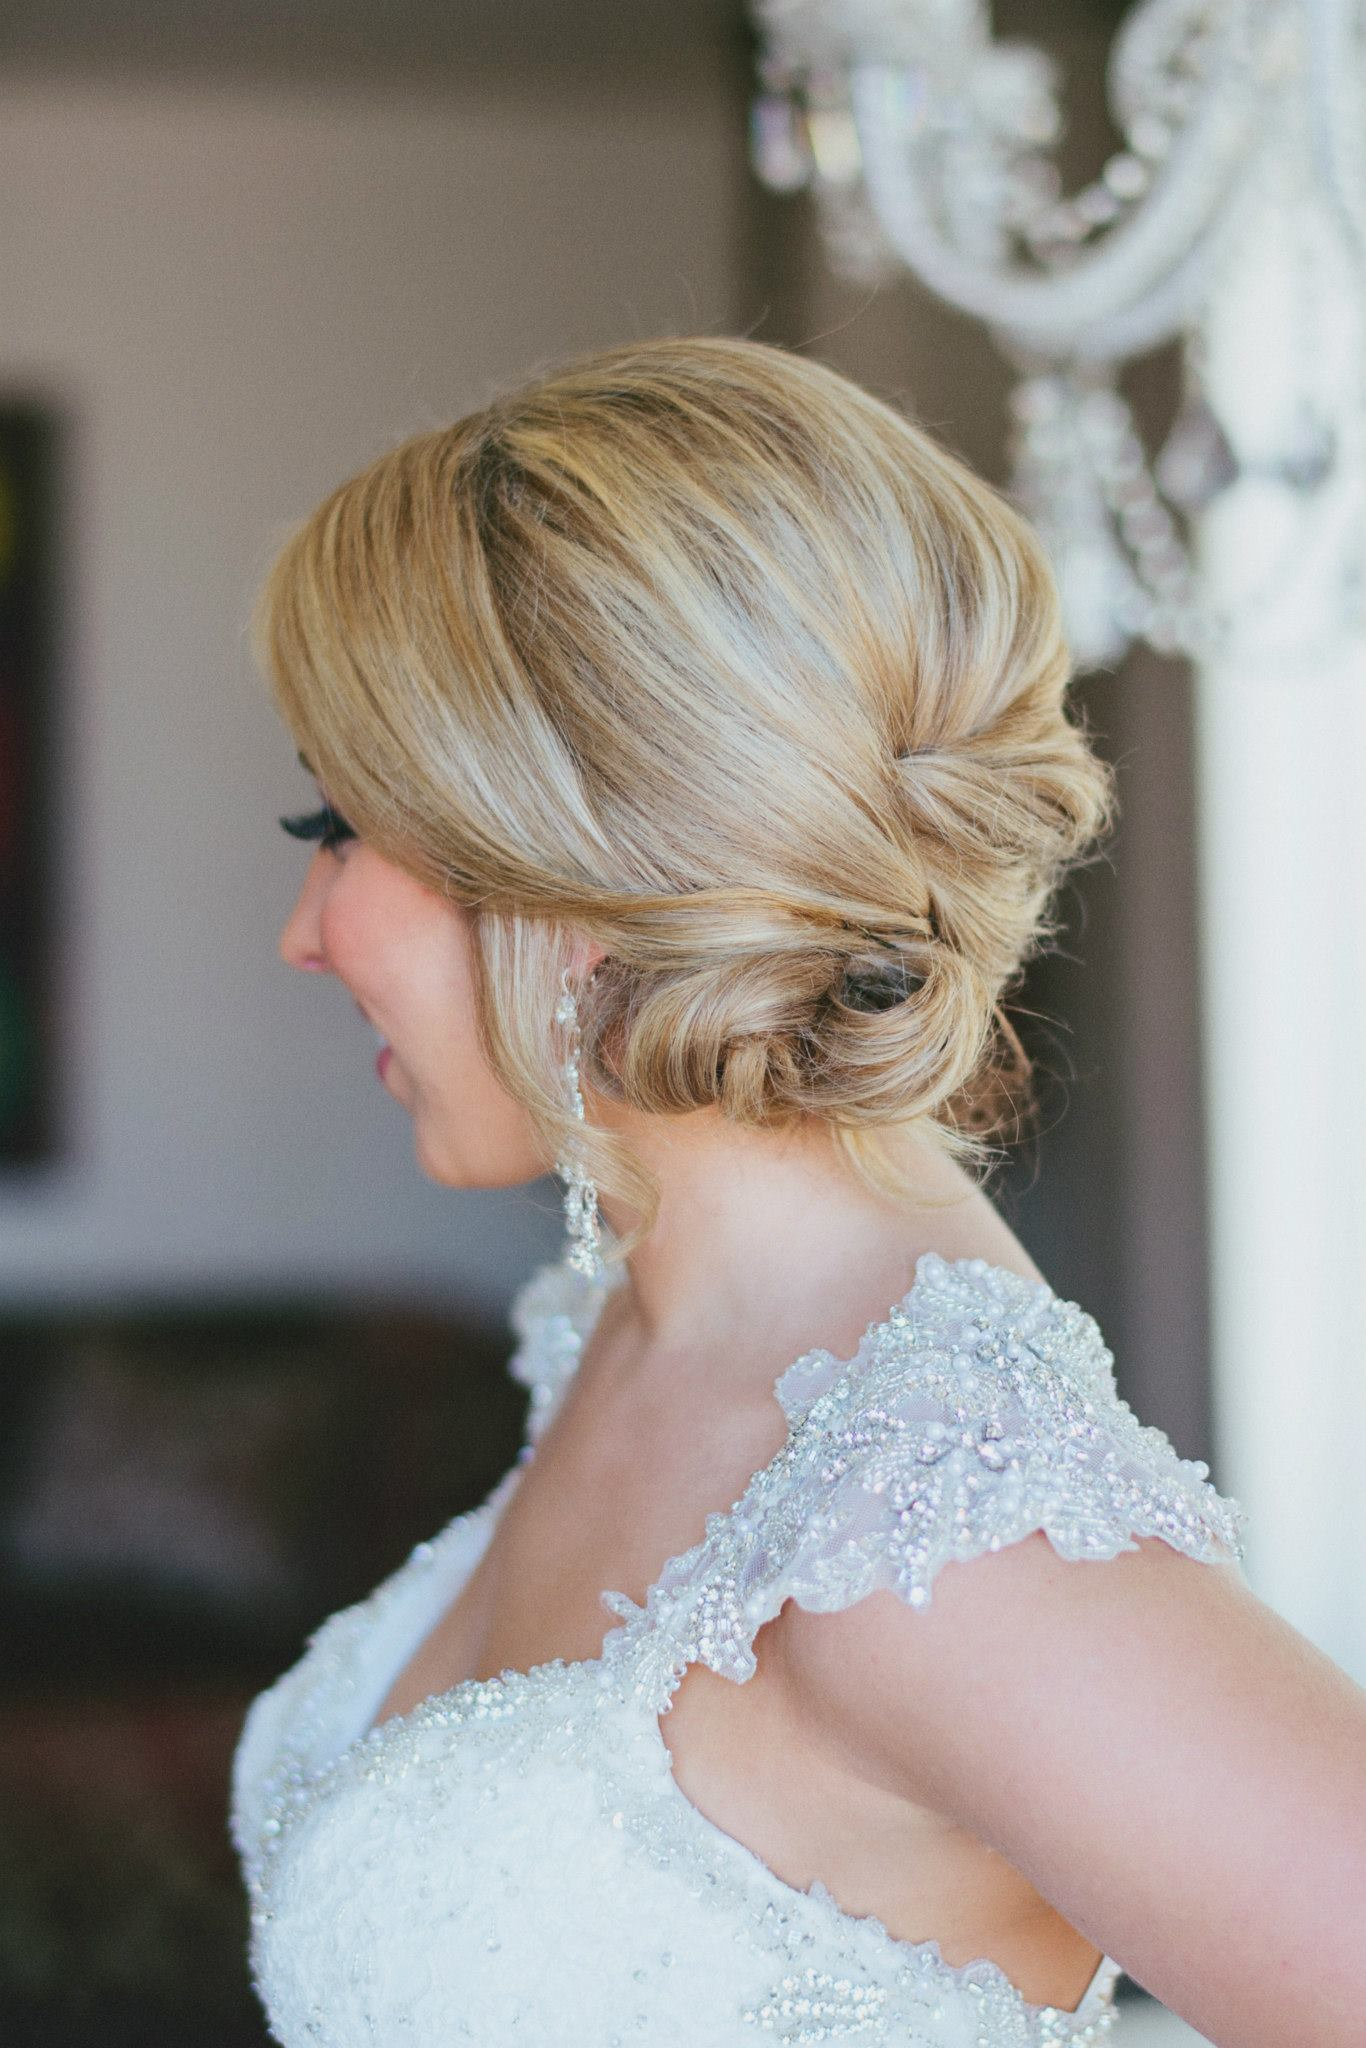 A+ for classic chic. | Hair:  Dazzle Doll Makeup and Hair  |  Photo Credit